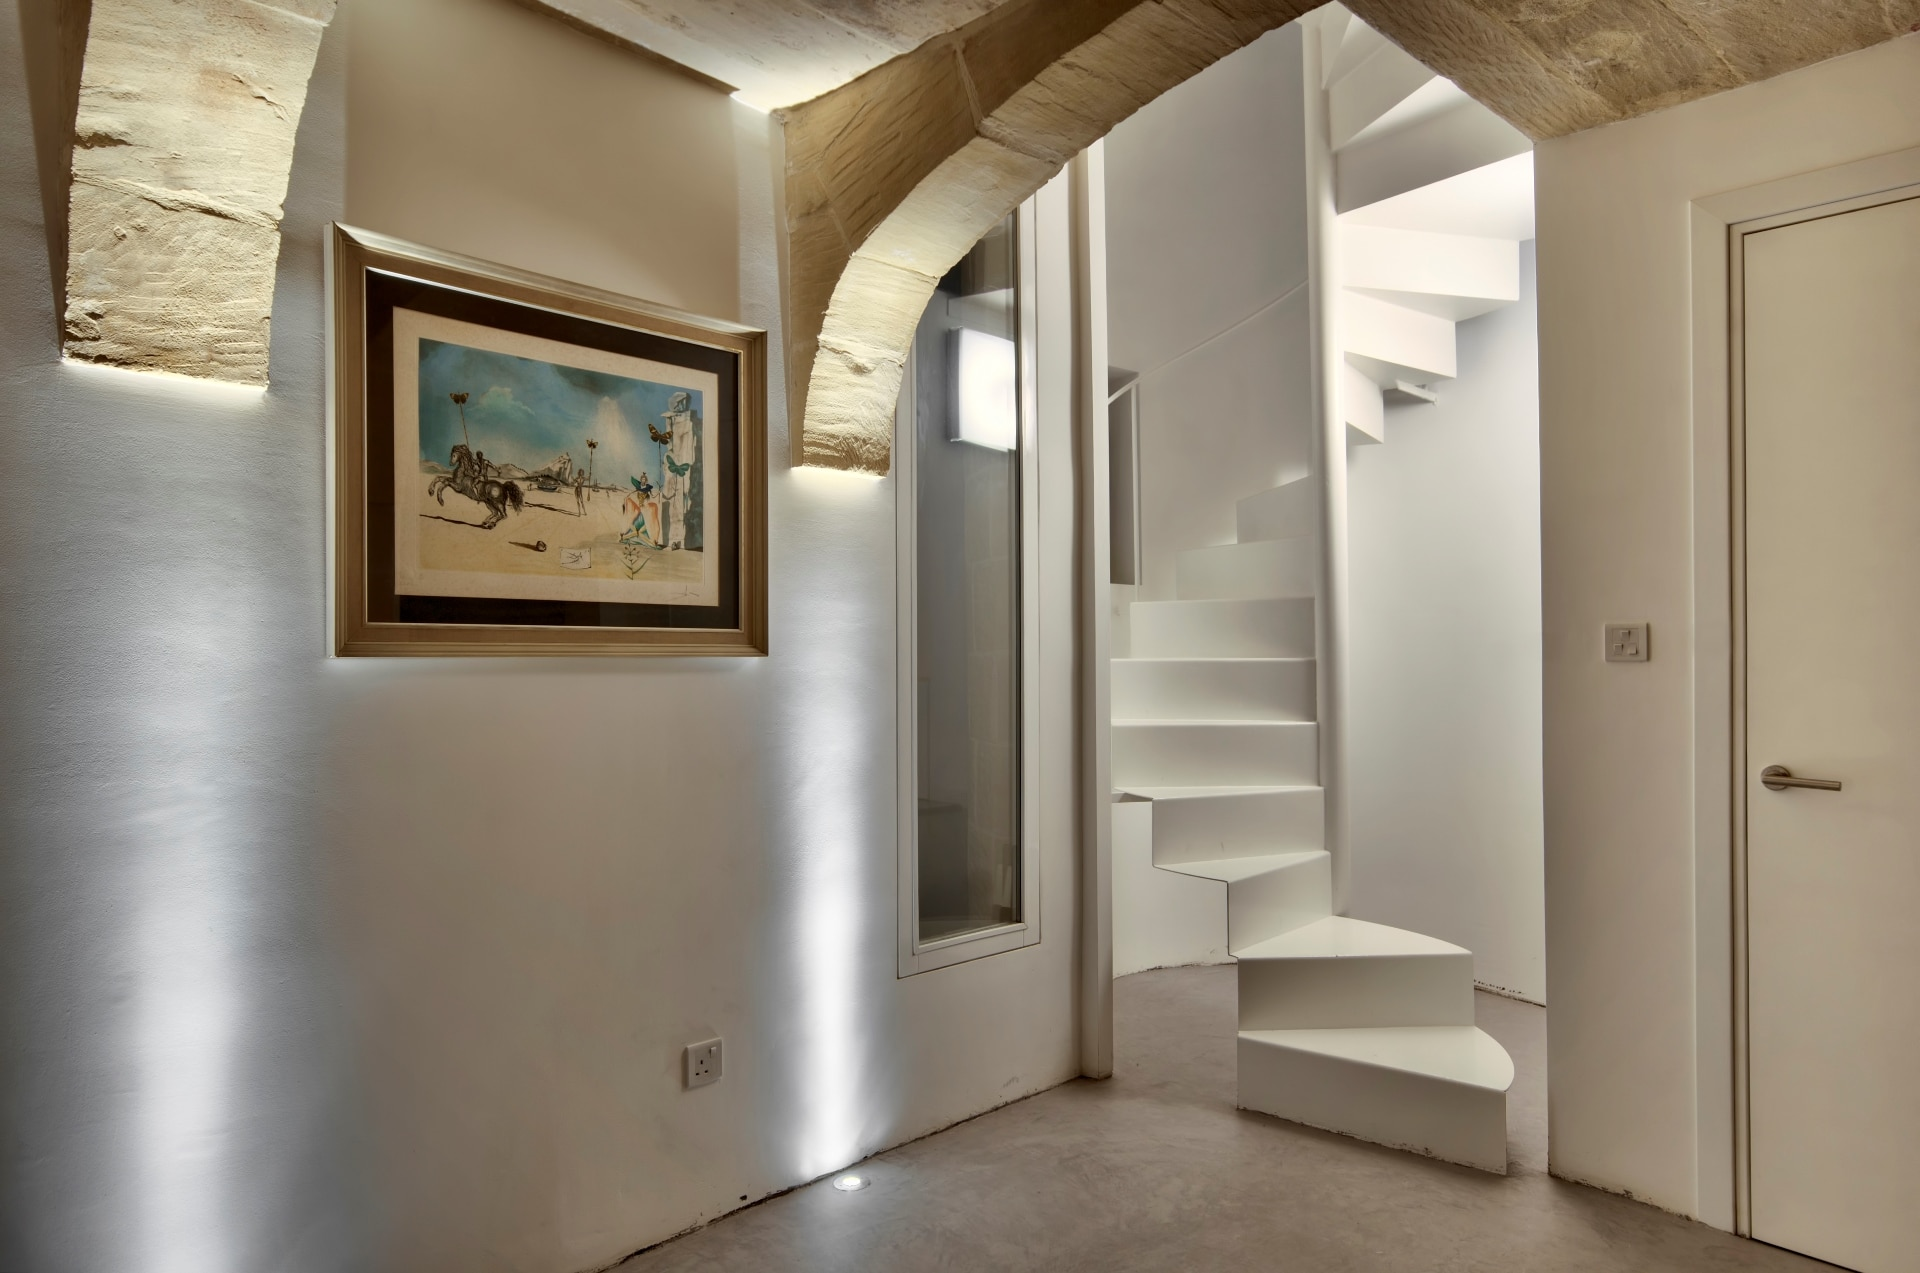 Feature – metal spiral stairs, lighting arches